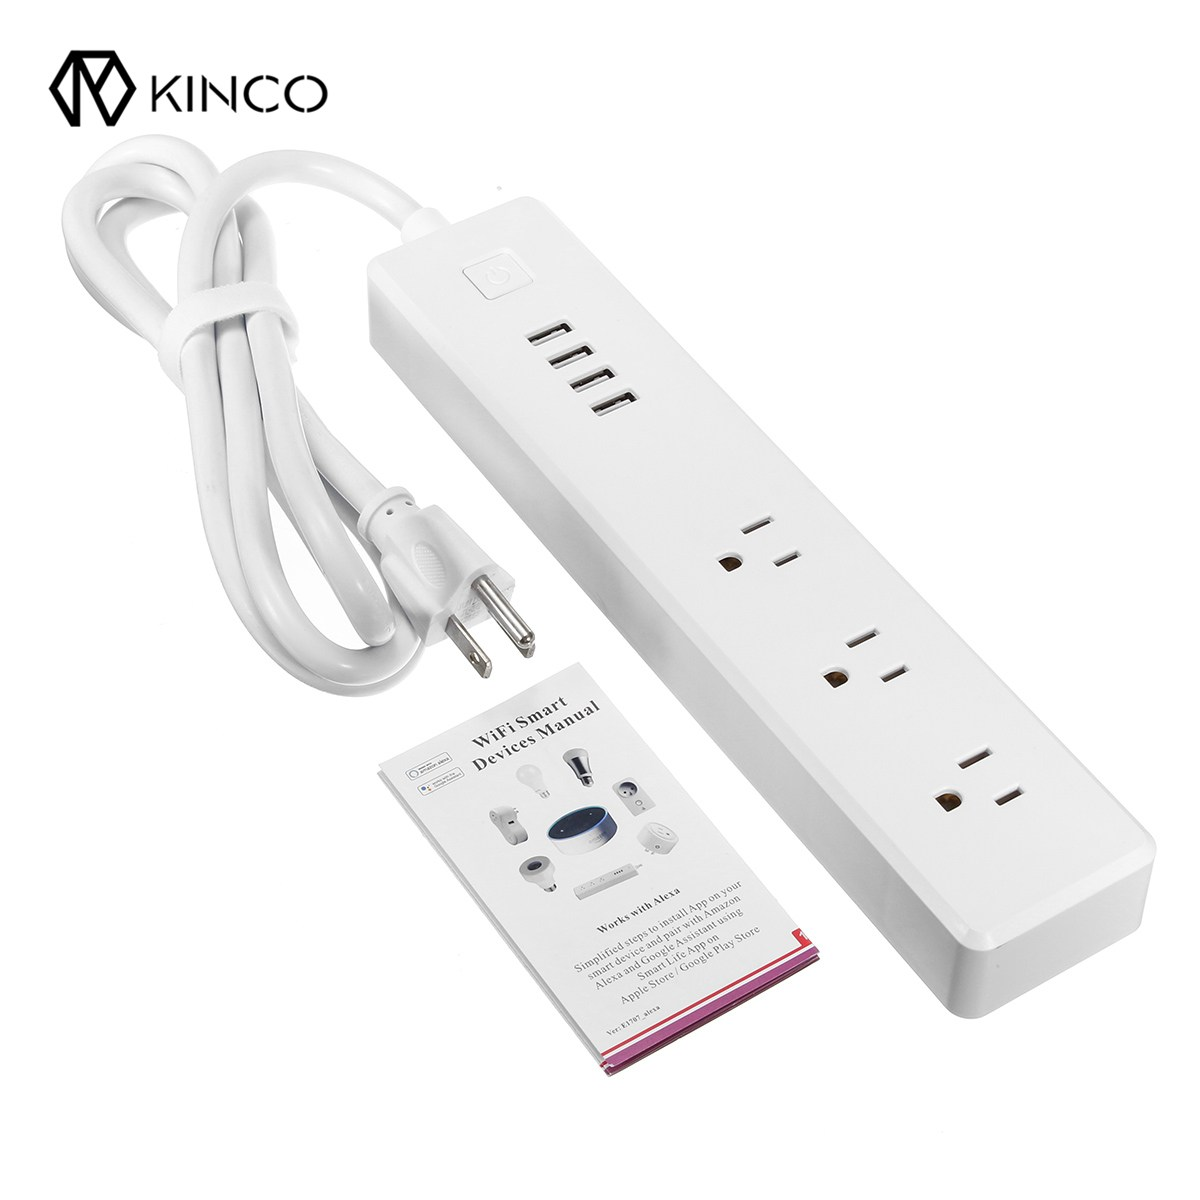 цена на Kinco New Smart Wifi Power Extension Lead US Electrical Plug Outlet Socket Strip 4 USB Charging Ports For Alexa Google Home